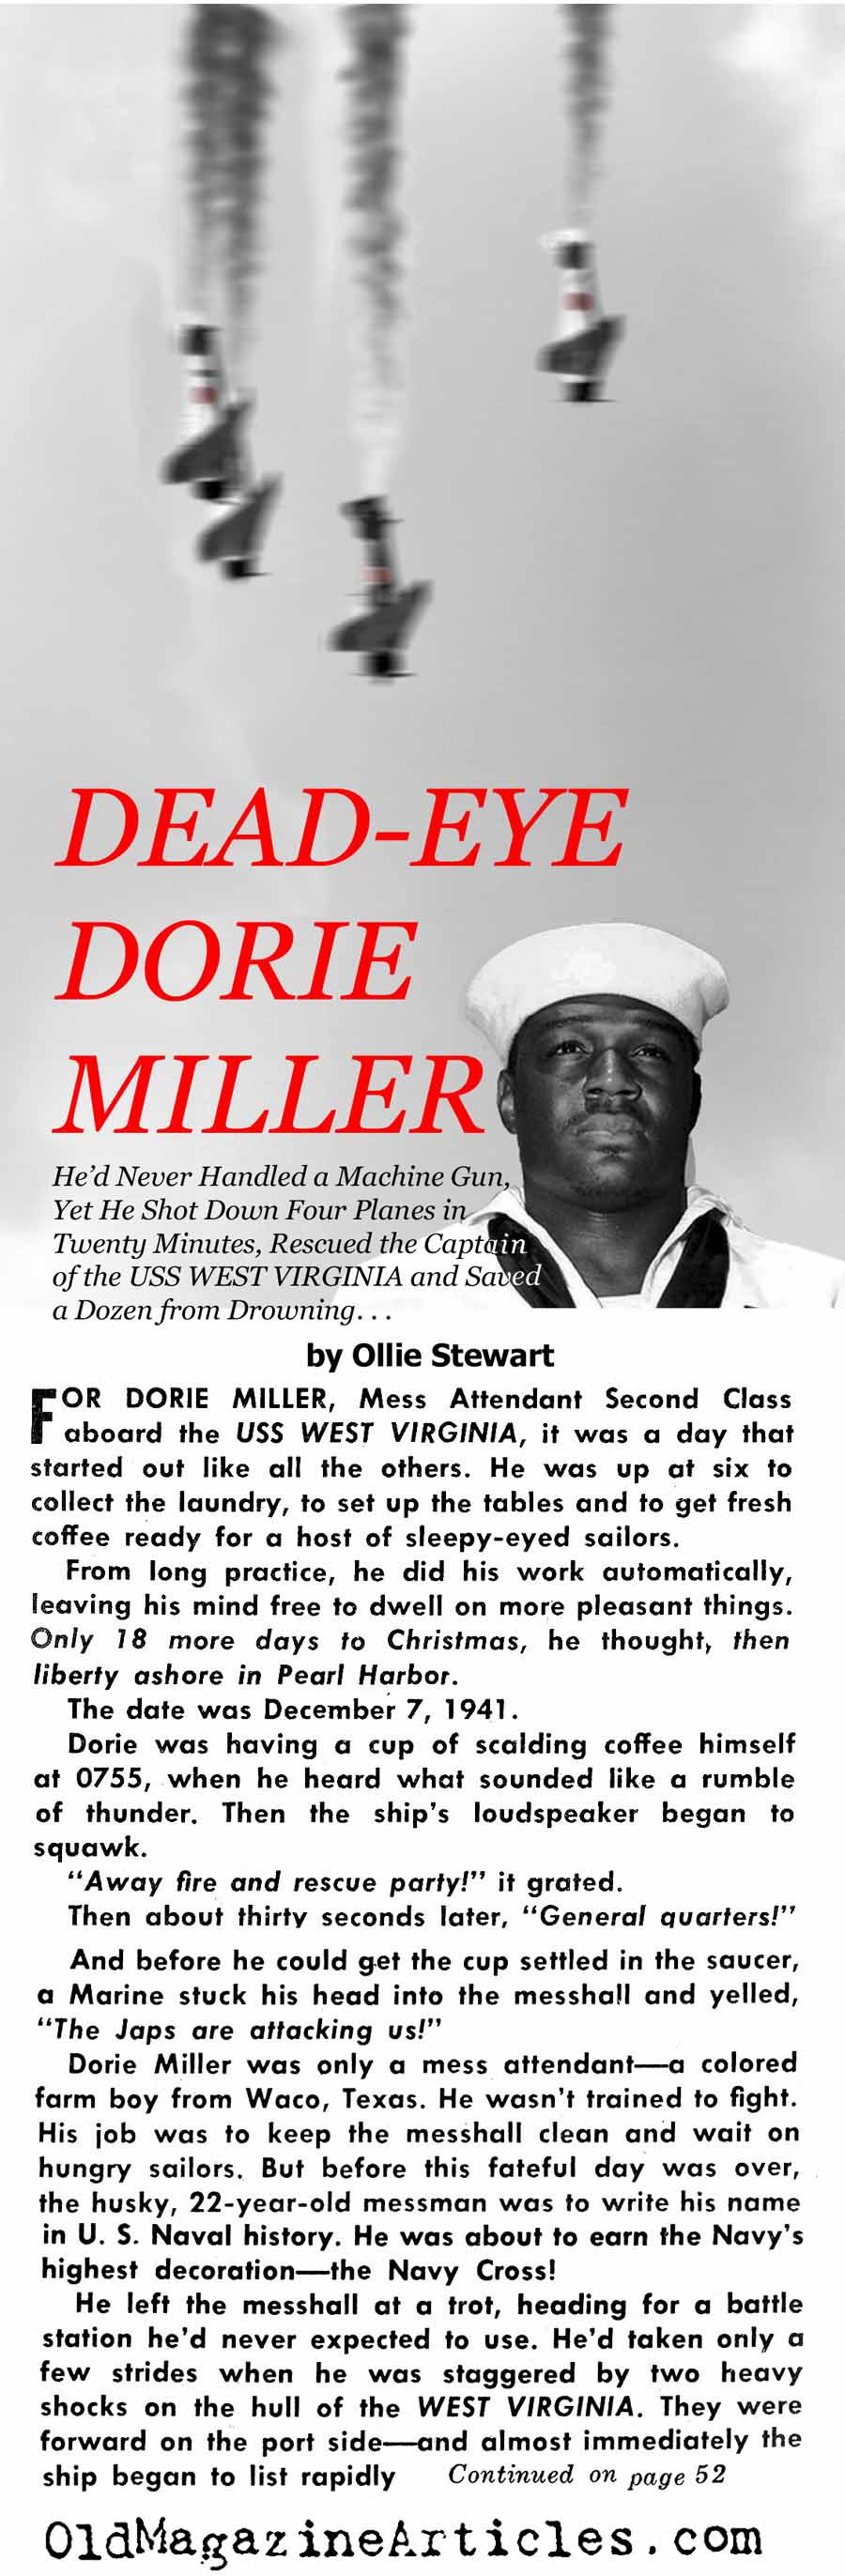 Dorie Miller at Pearl Harbor  (Yank & Bluebook Magazines, 1944 & '62)